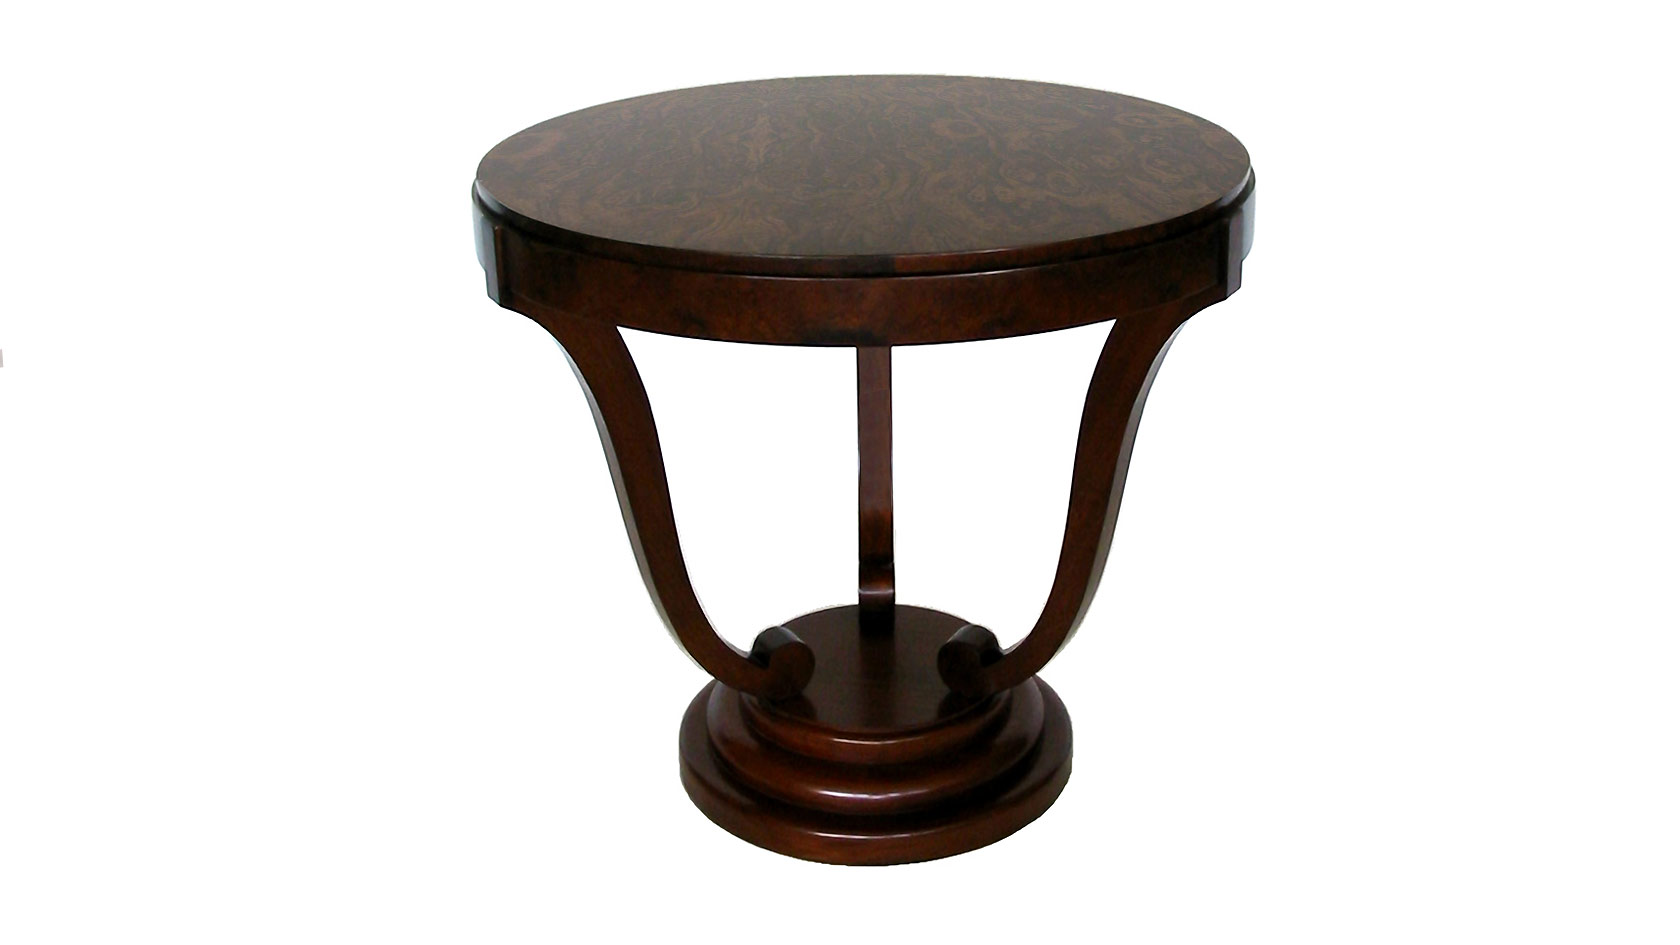 fiore center table w.three legs